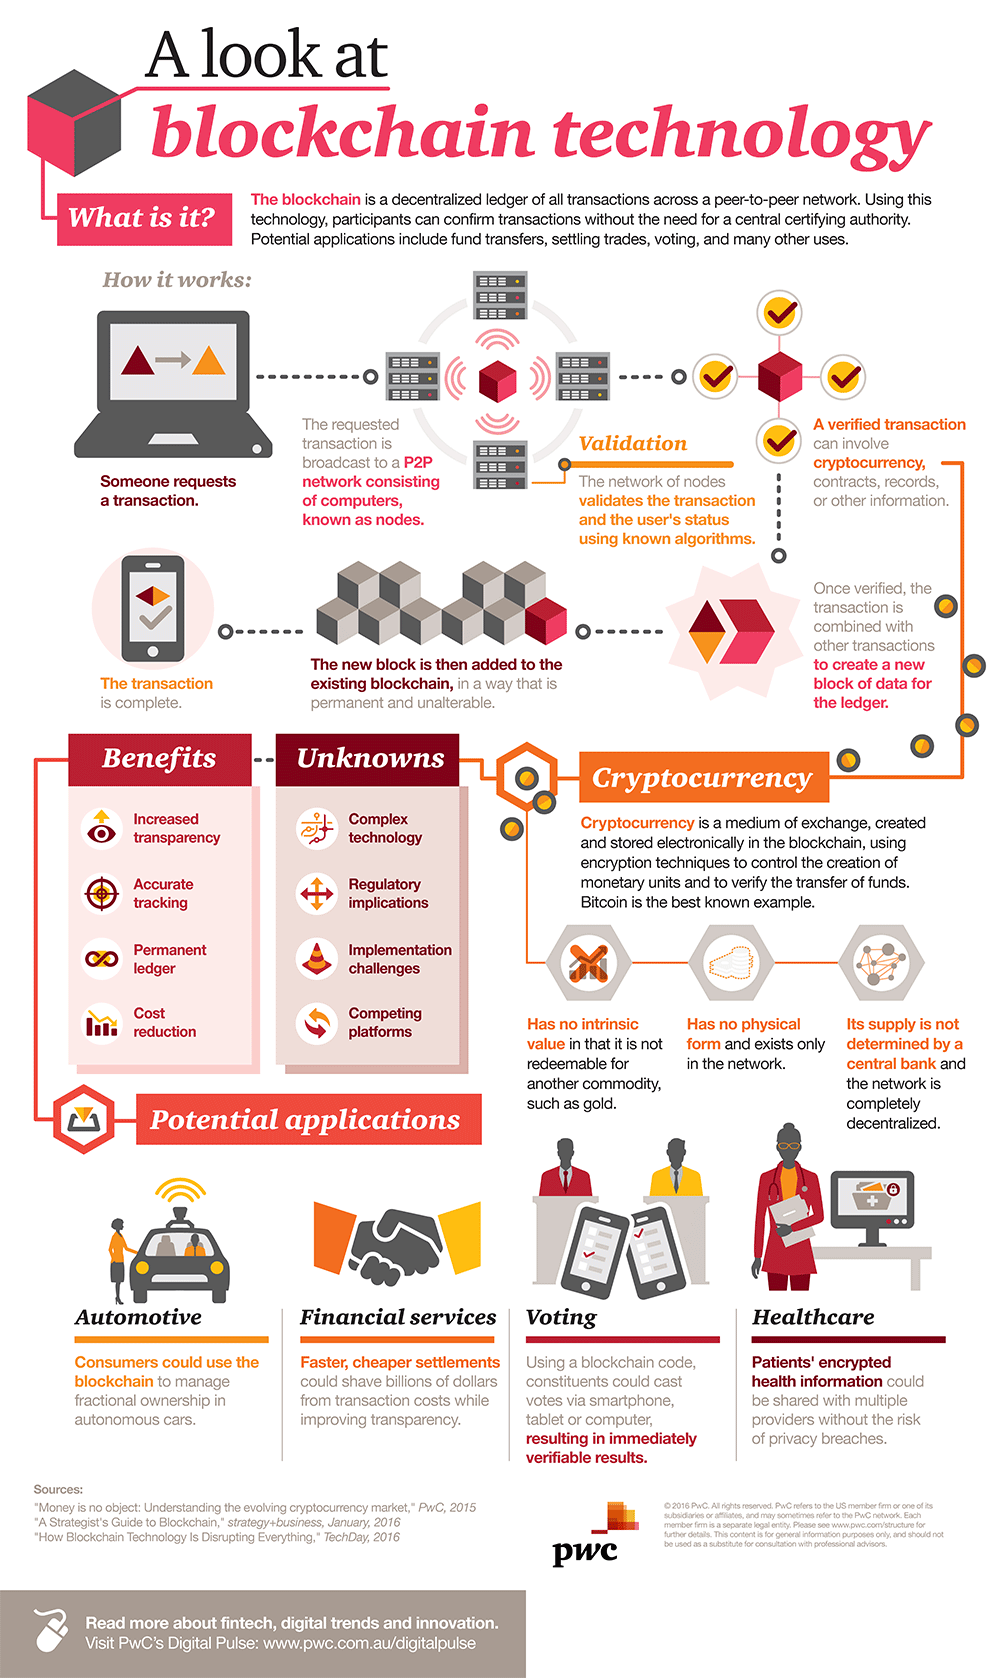 I tried to embed this link - but you can see the link above - This was a really good info-graphic on blockchain